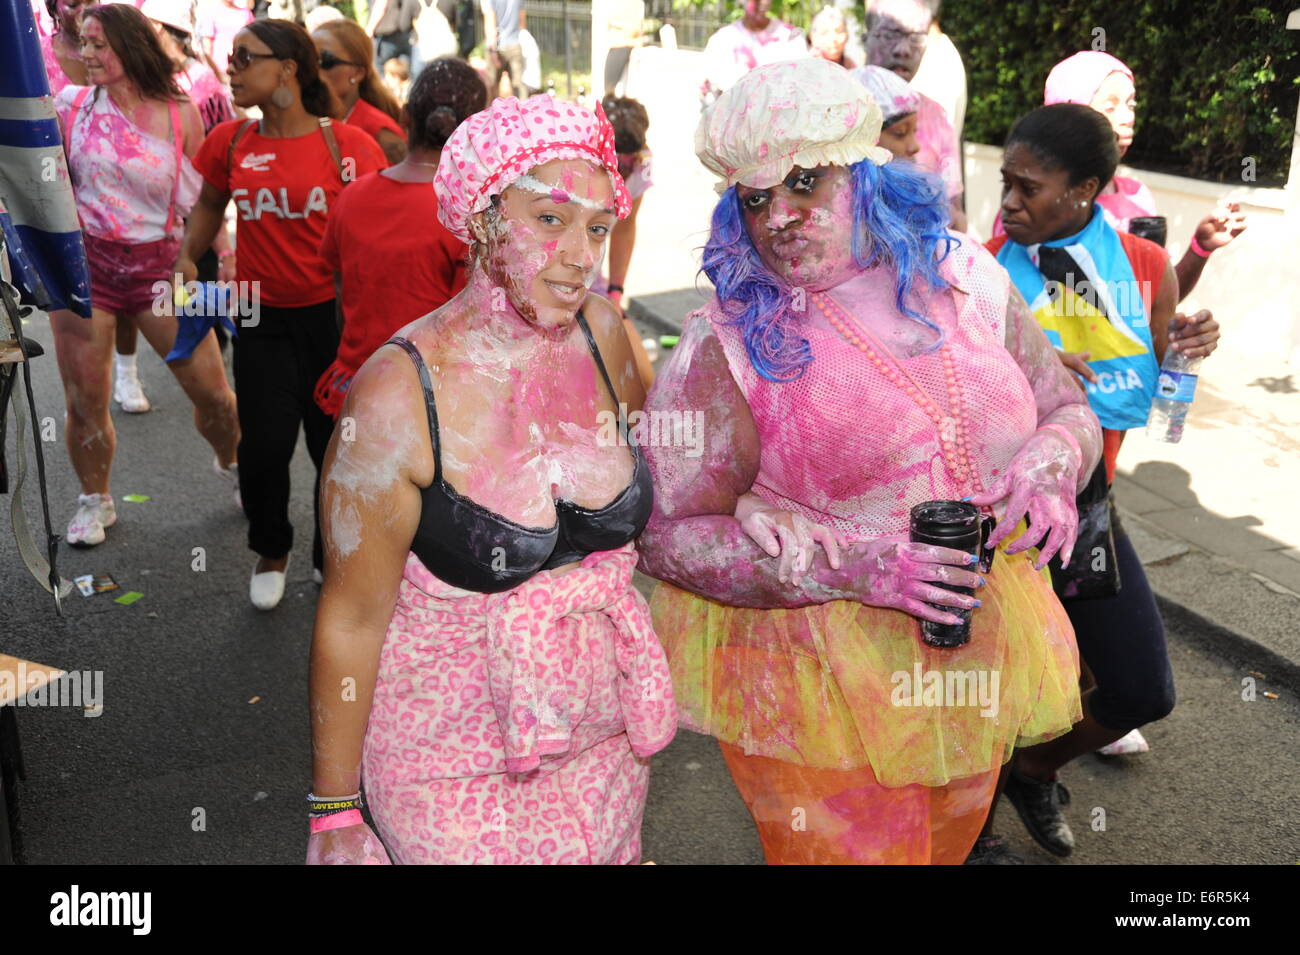 Notting Hill Carnival family day - Stock Image